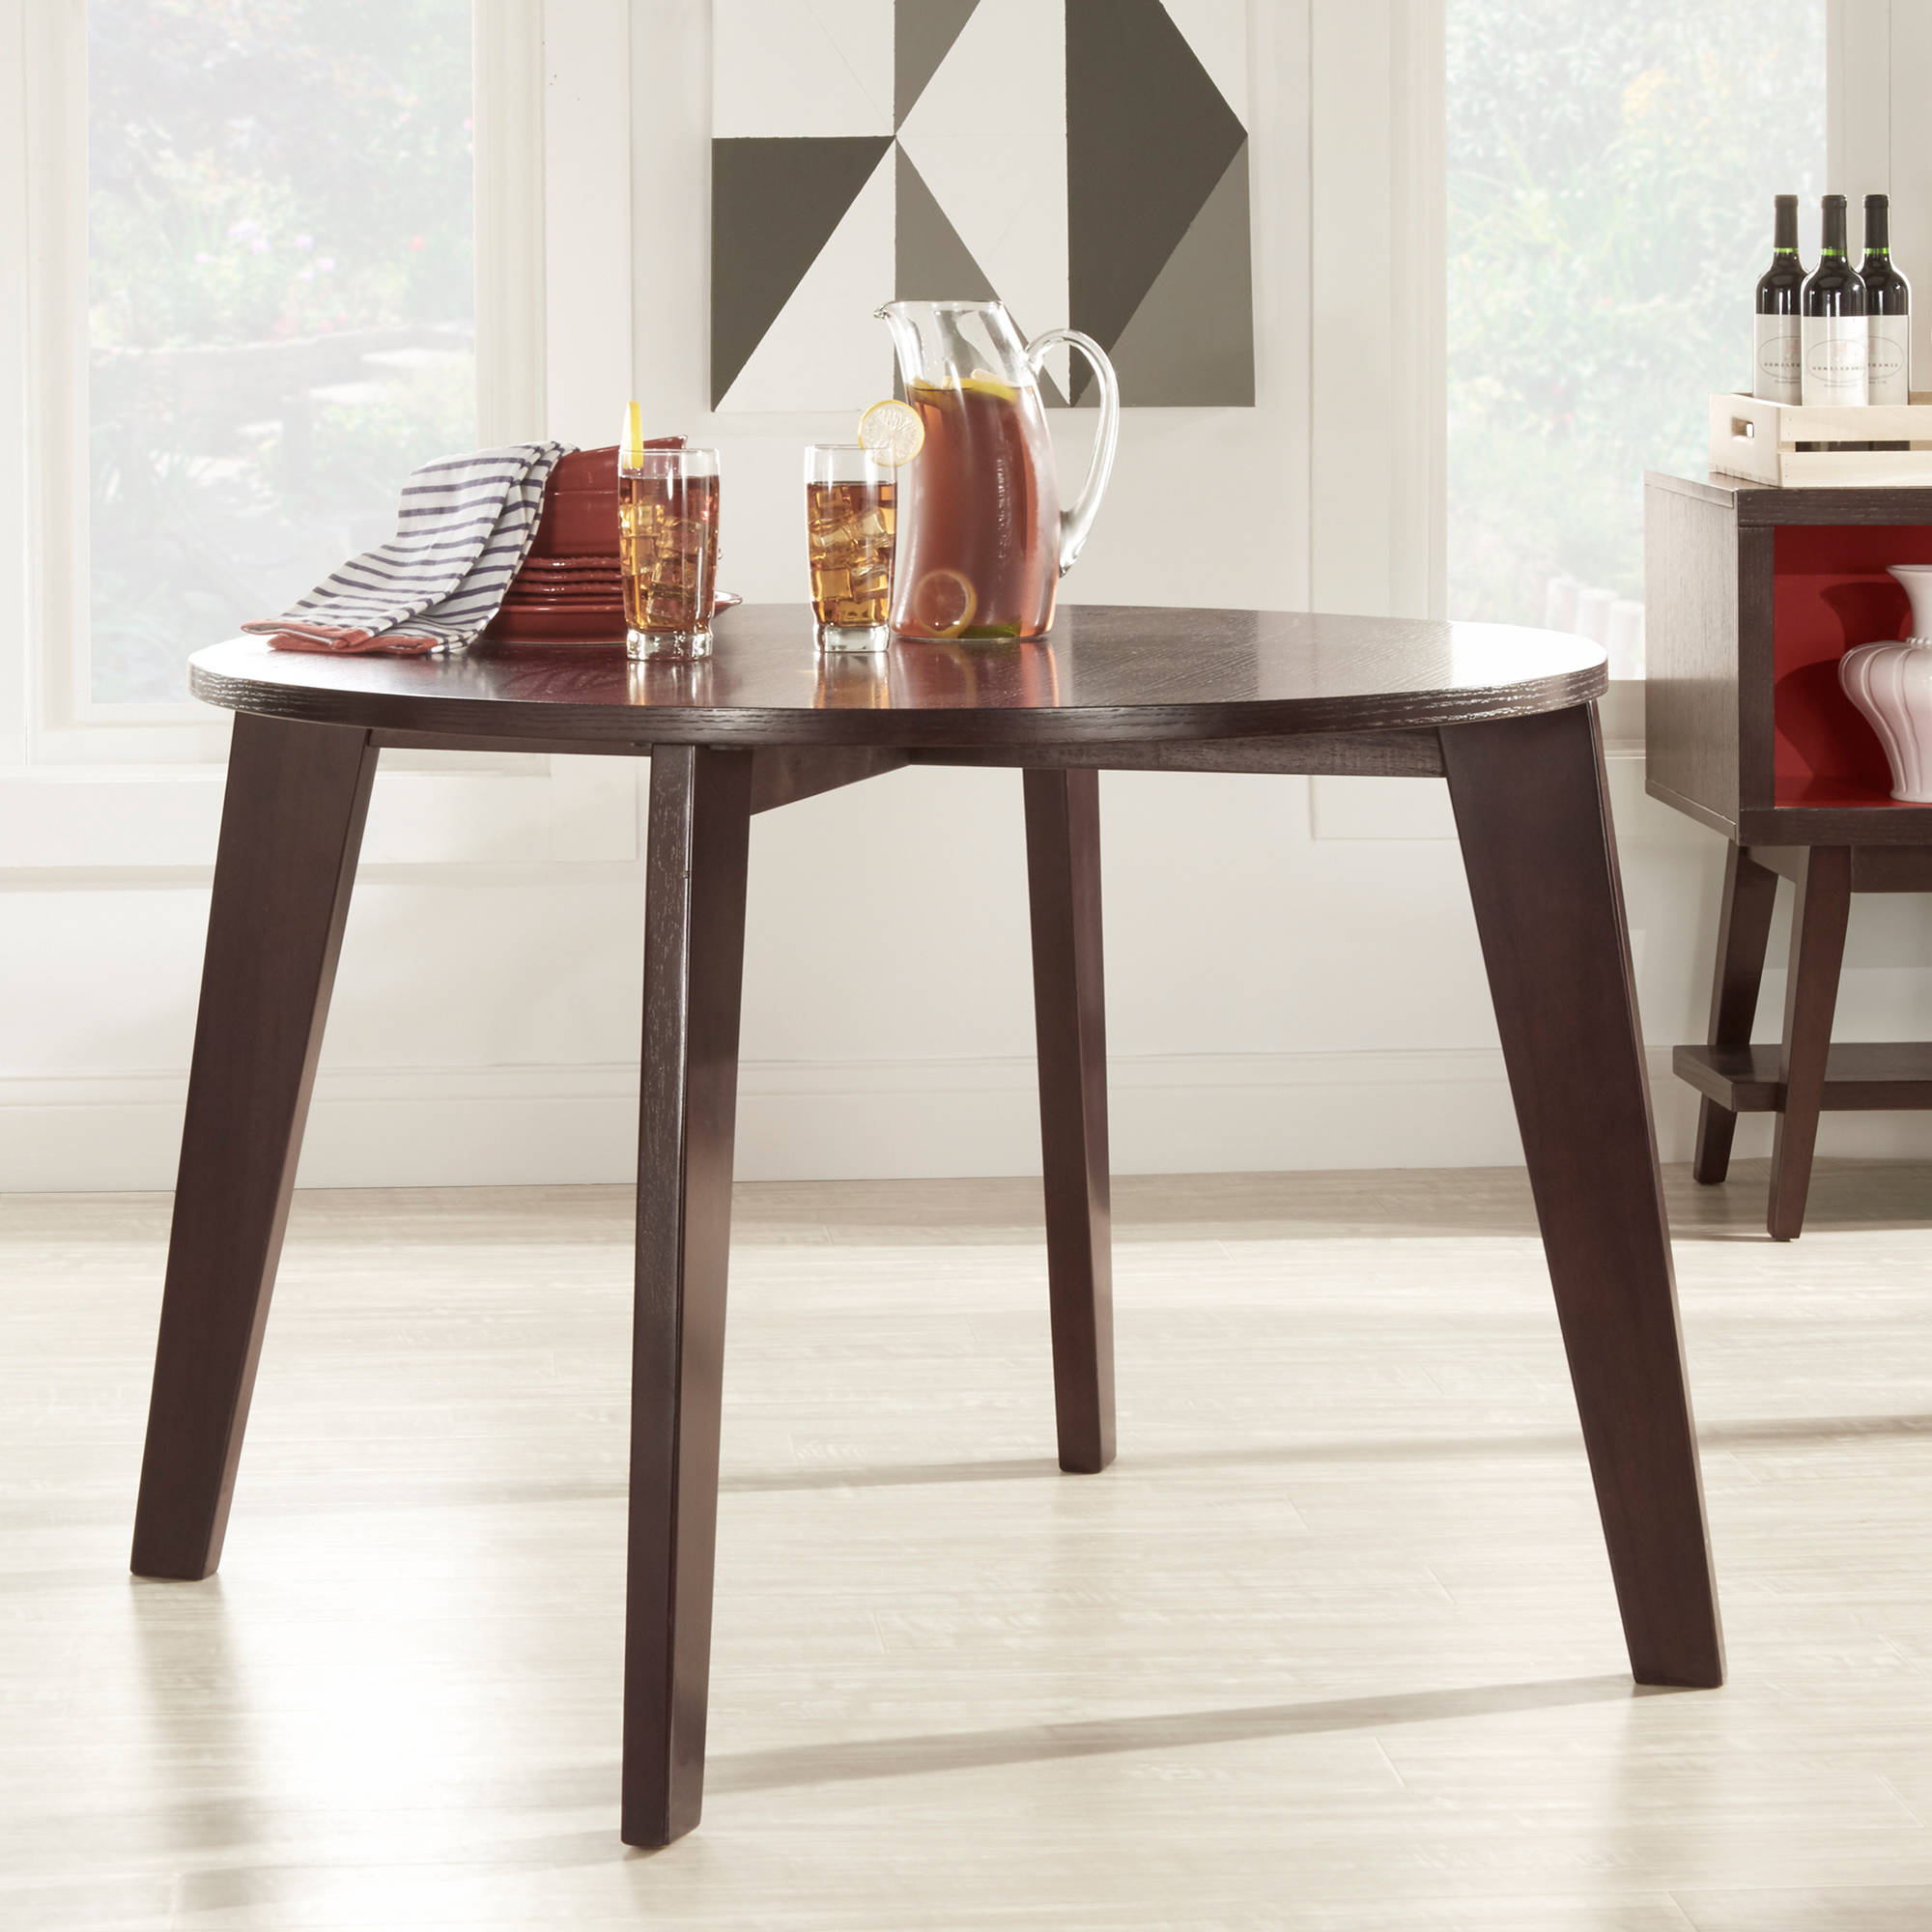 Chelsea Lane Baxter Round Dining Table, Dark Brown by Overstock